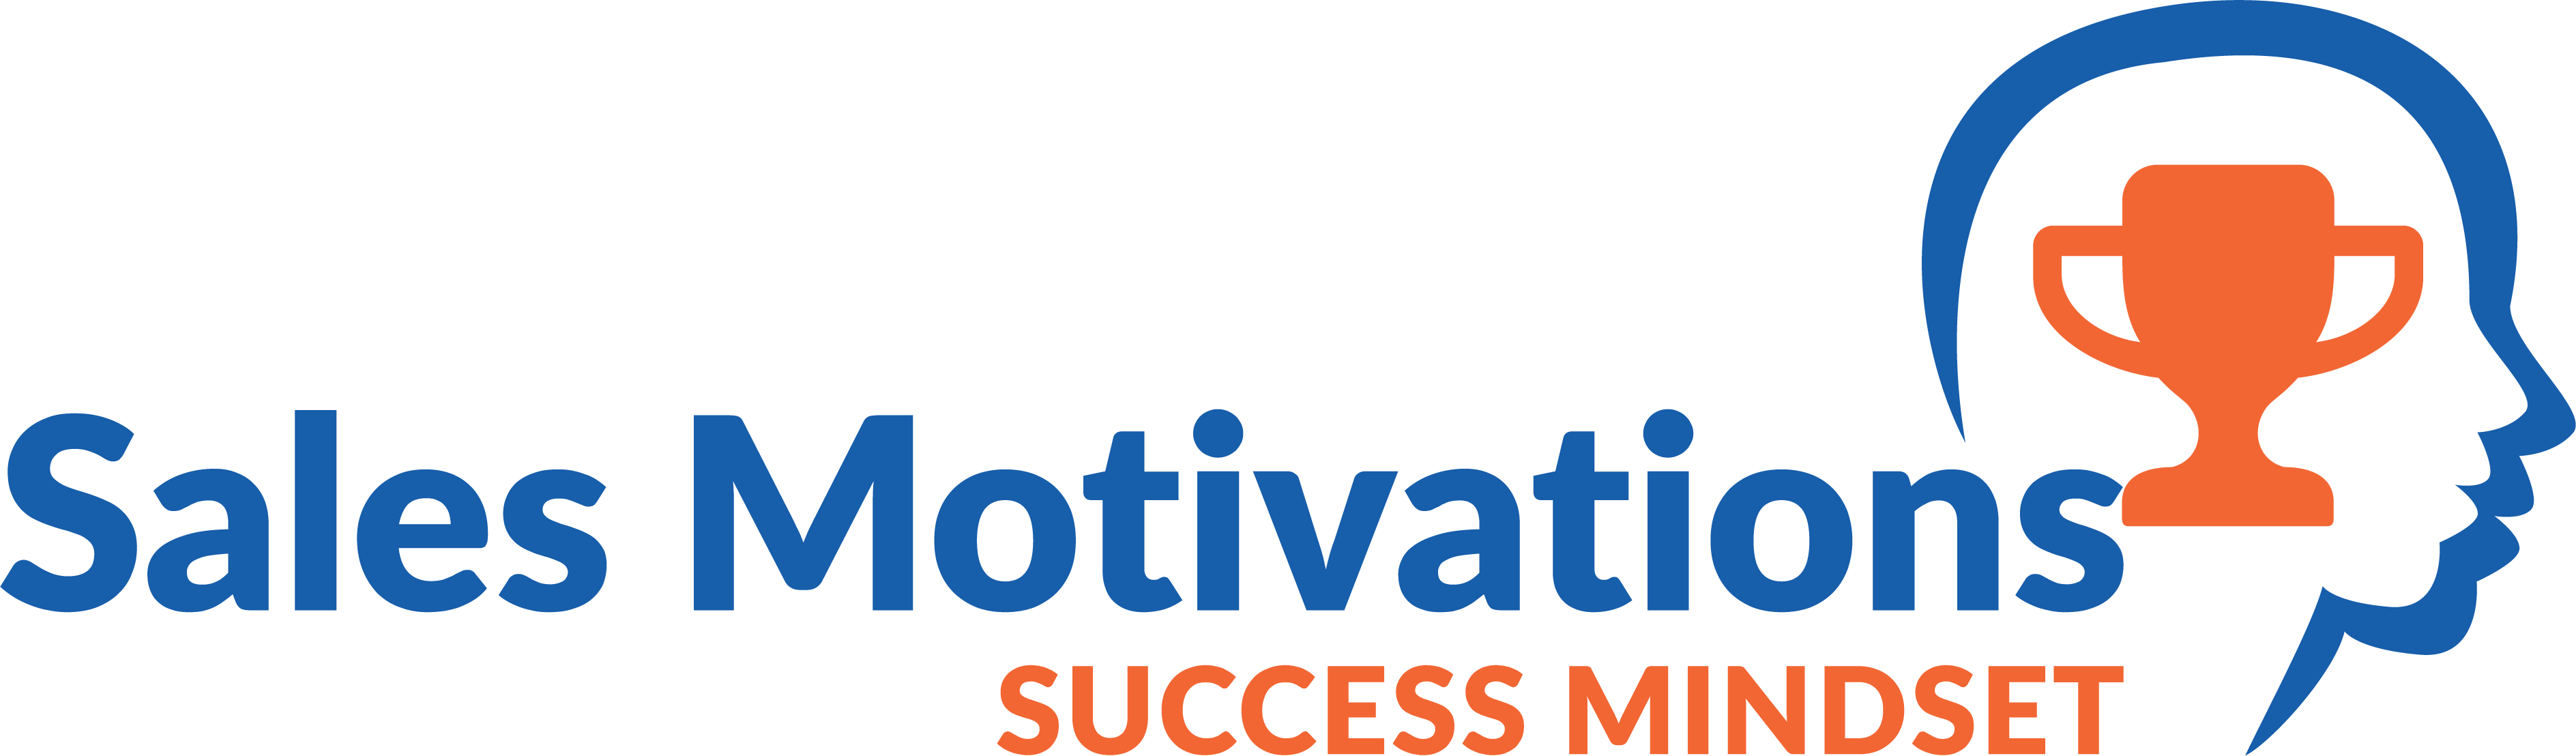 Sales Motivations Company logo